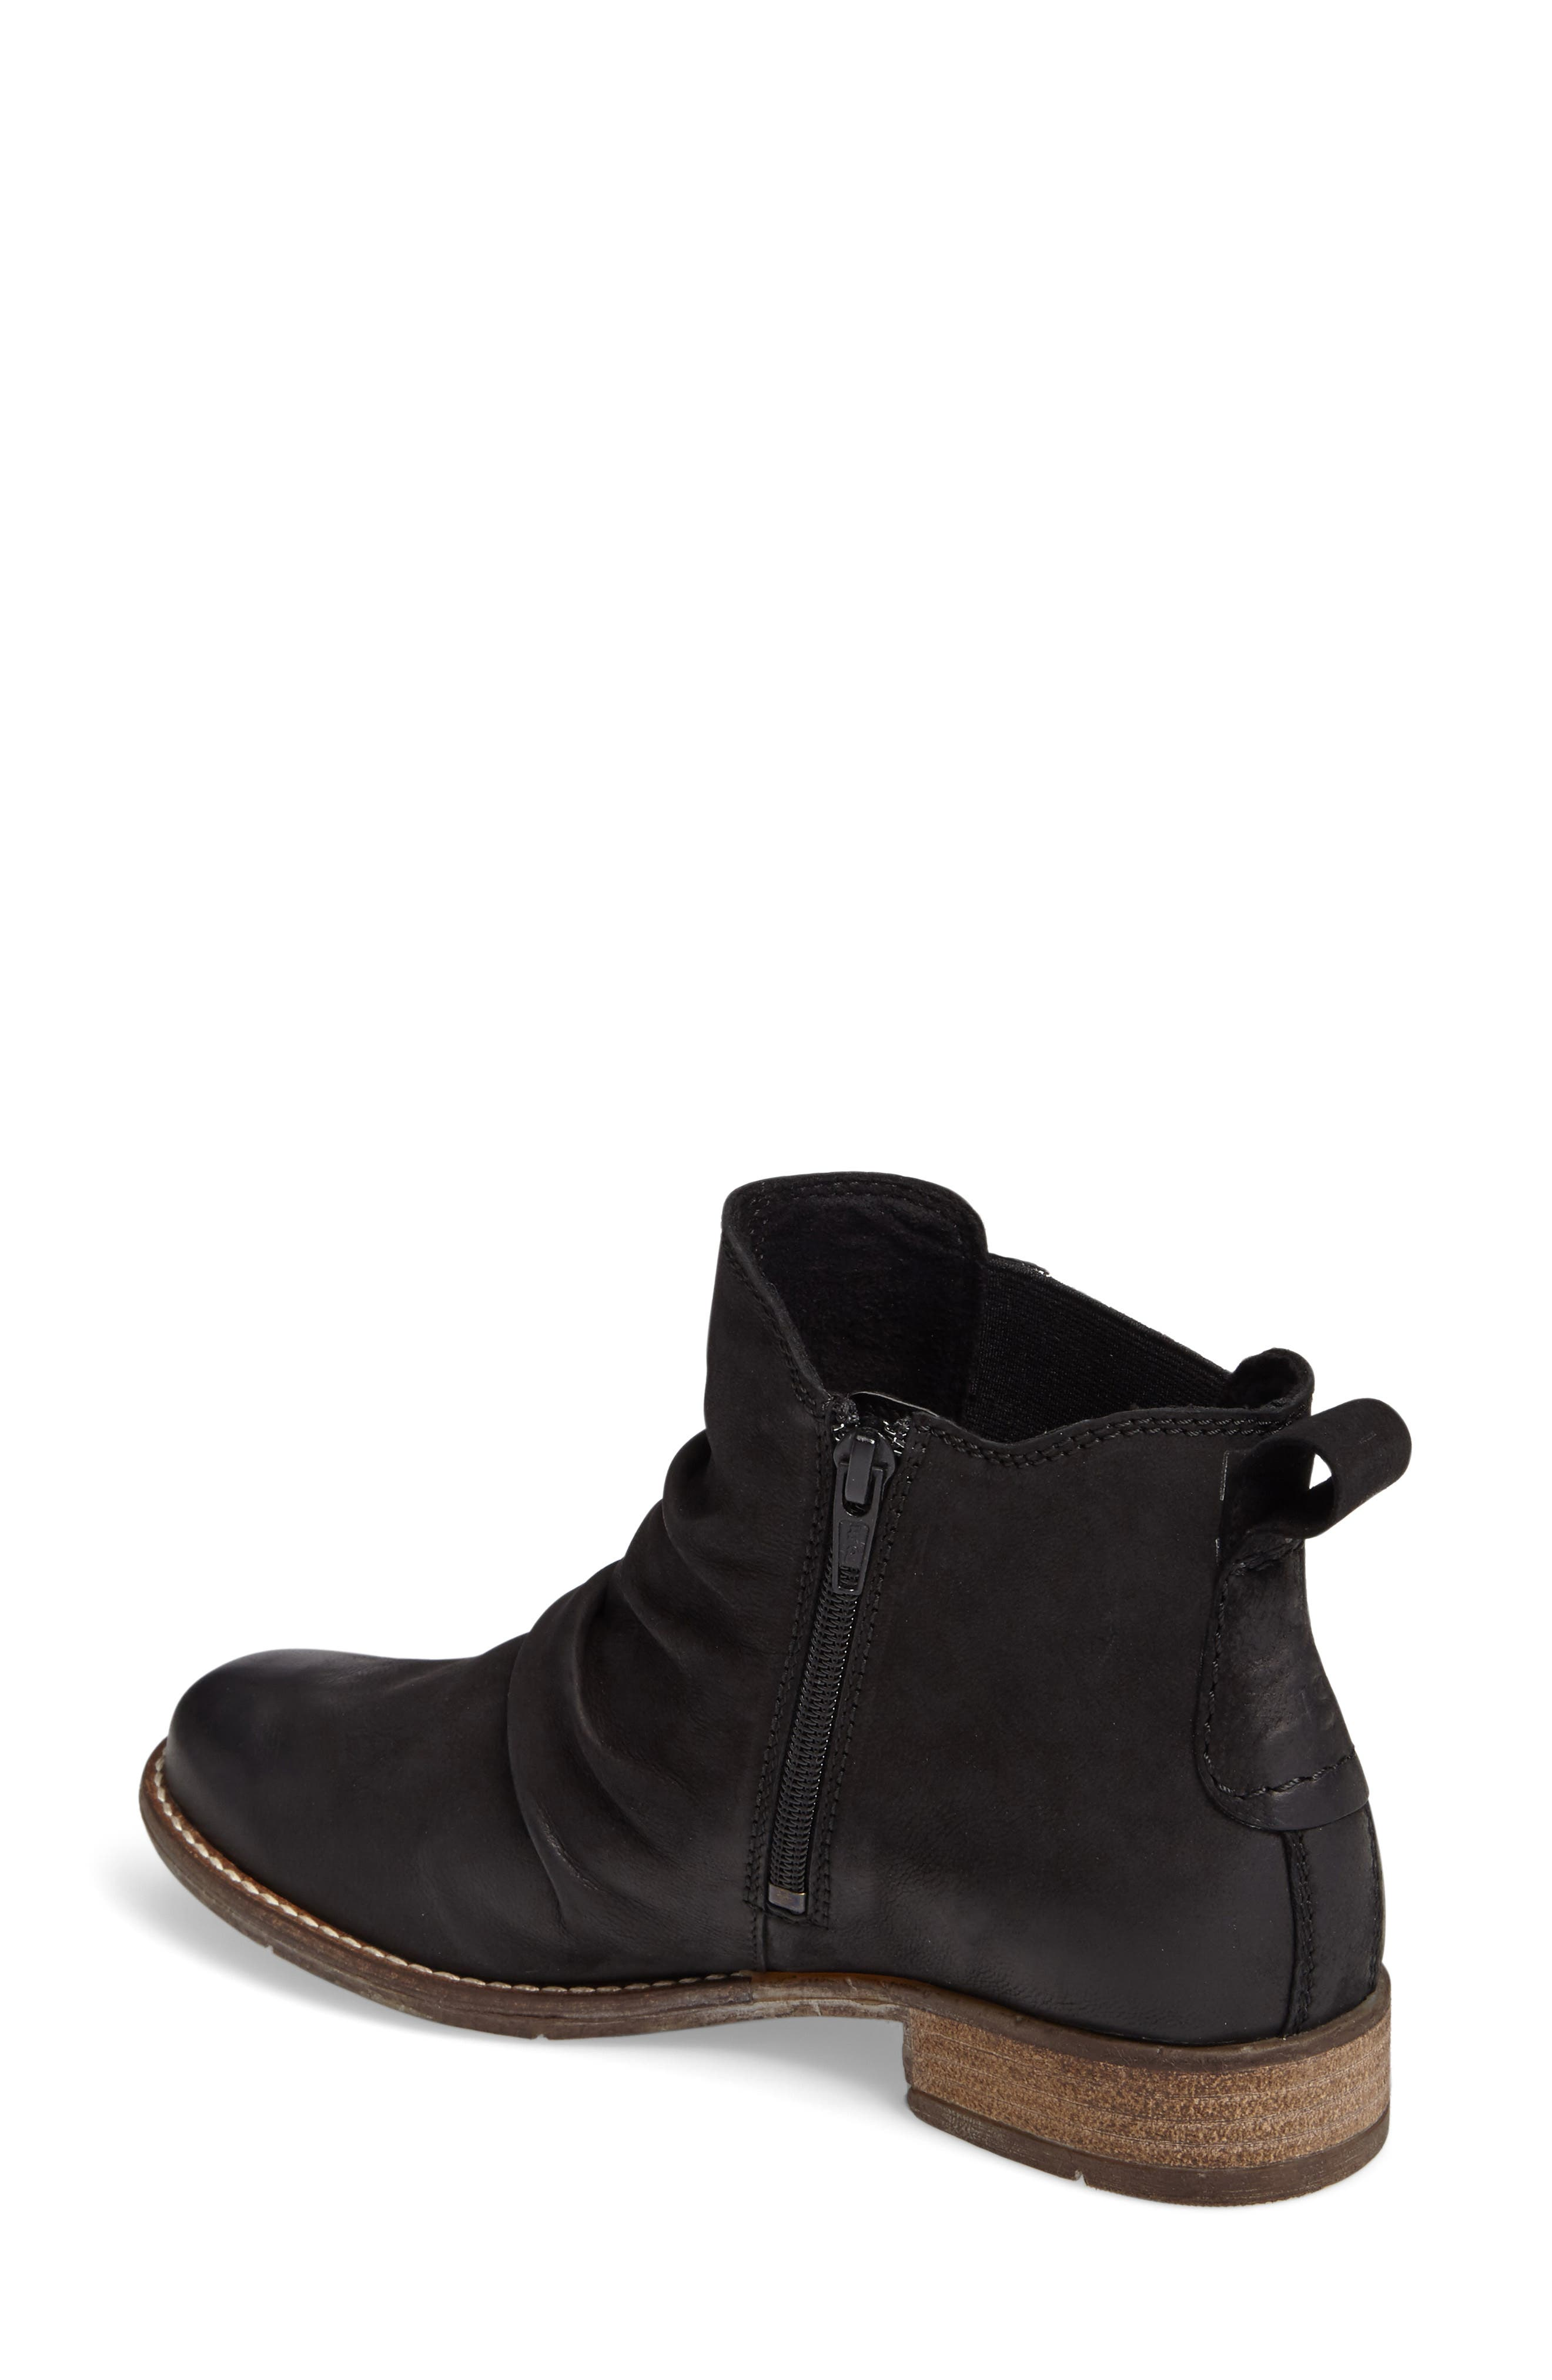 Sienna 59 Slouchy Chelsea Bootie,                             Alternate thumbnail 2, color,                             004